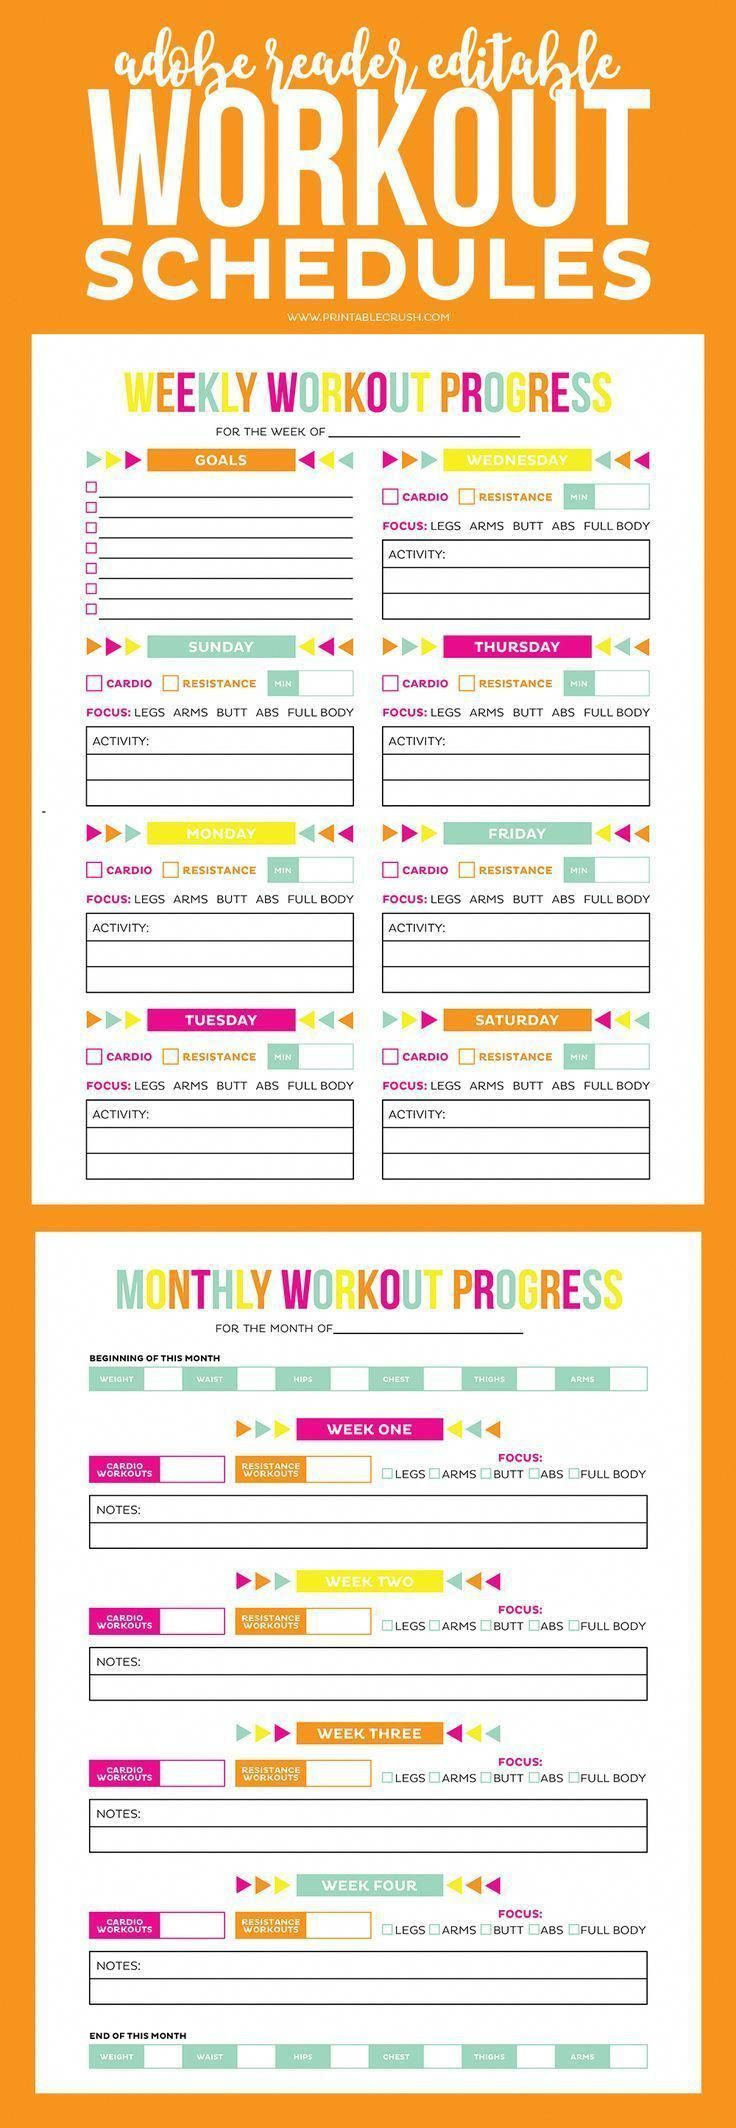 Download this Adobe Reader Editable Printable Workout Schedule and Progress sheet to help you keep i...